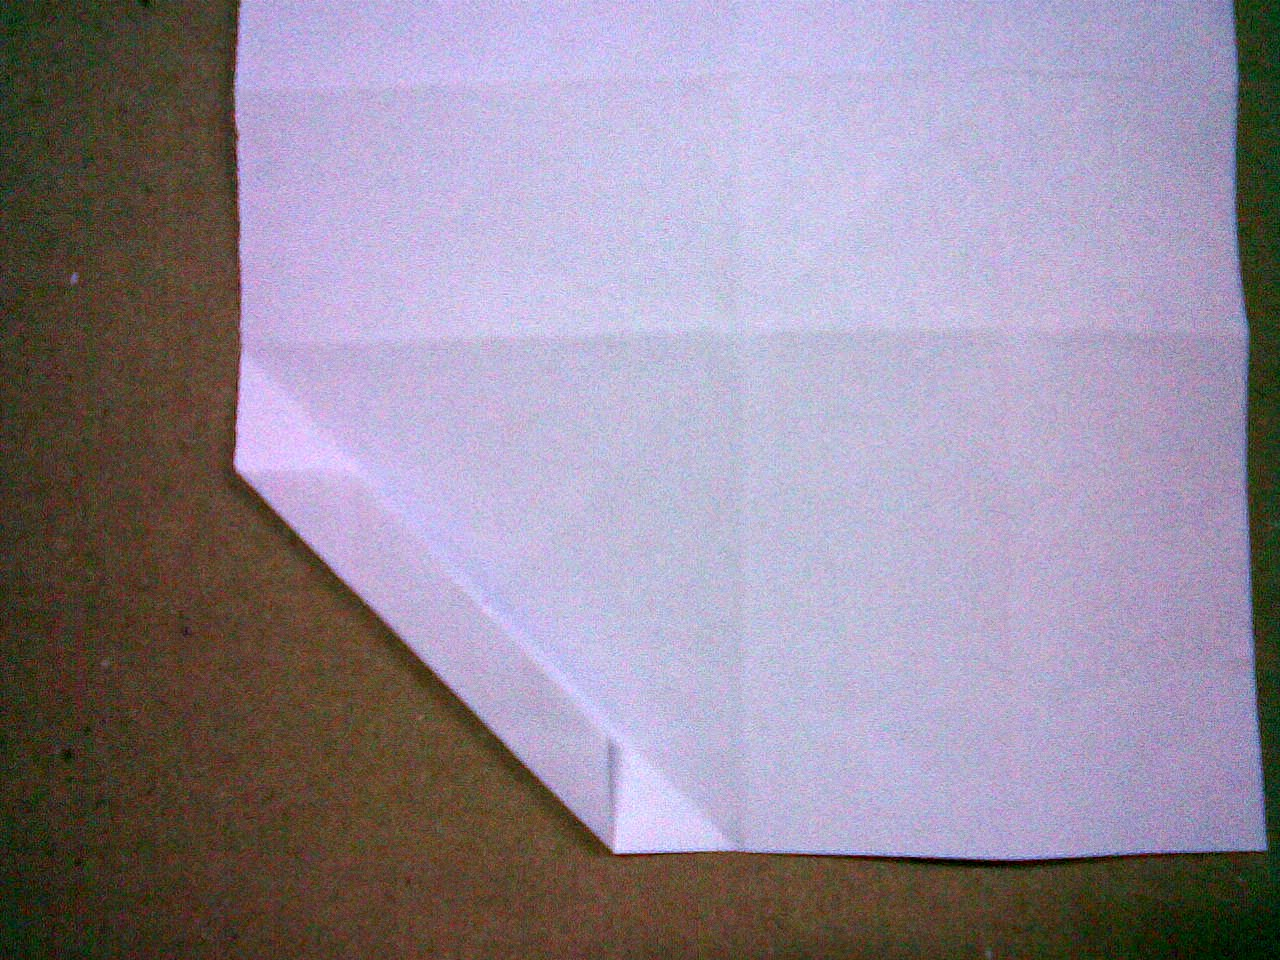 diy fold box cover paper ,reuse,recycle,plastic bag,crafts